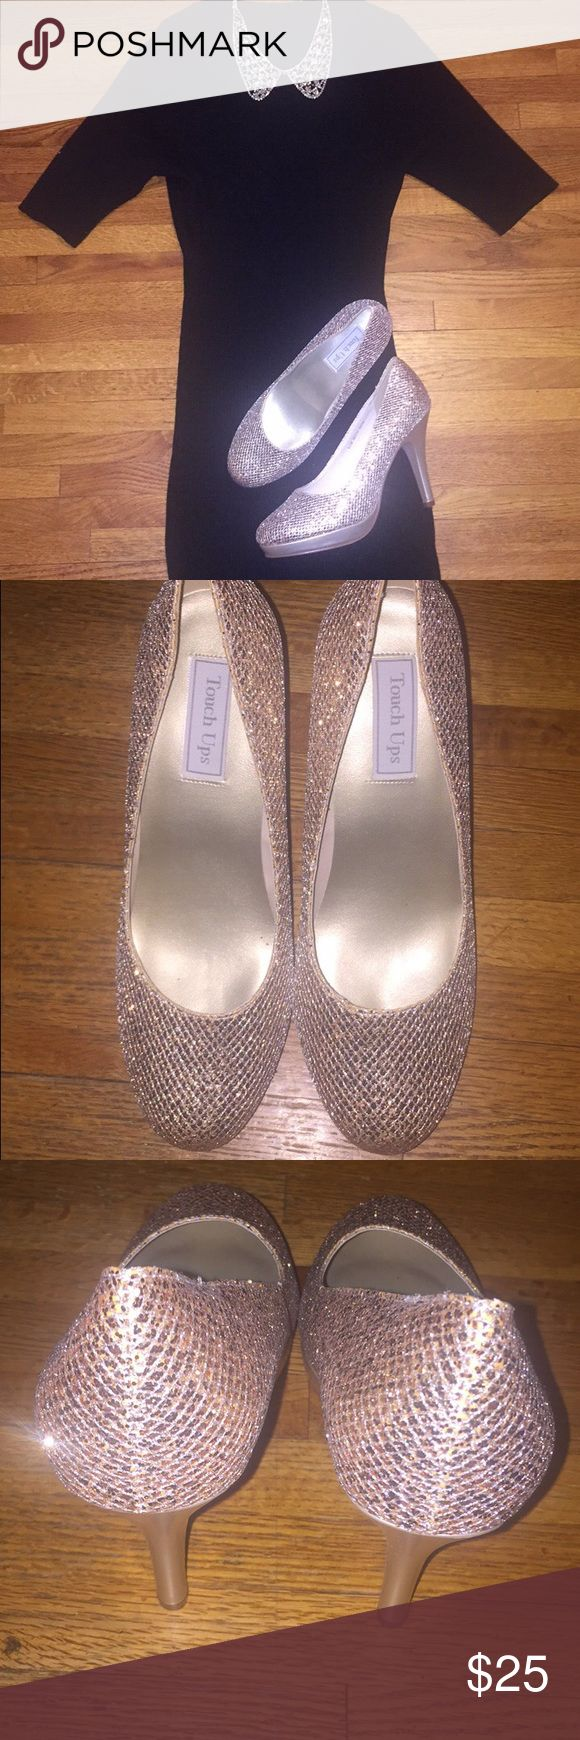 The perfect gold wedding heels What goes better with a black dress (bridesmaids dress or wedding gown) than the perfect SHOES! (Shoes Only) Touch Ups brand. Worn once for a wedding. Gold upper. Size 10.5 Touch Ups Shoes Heels